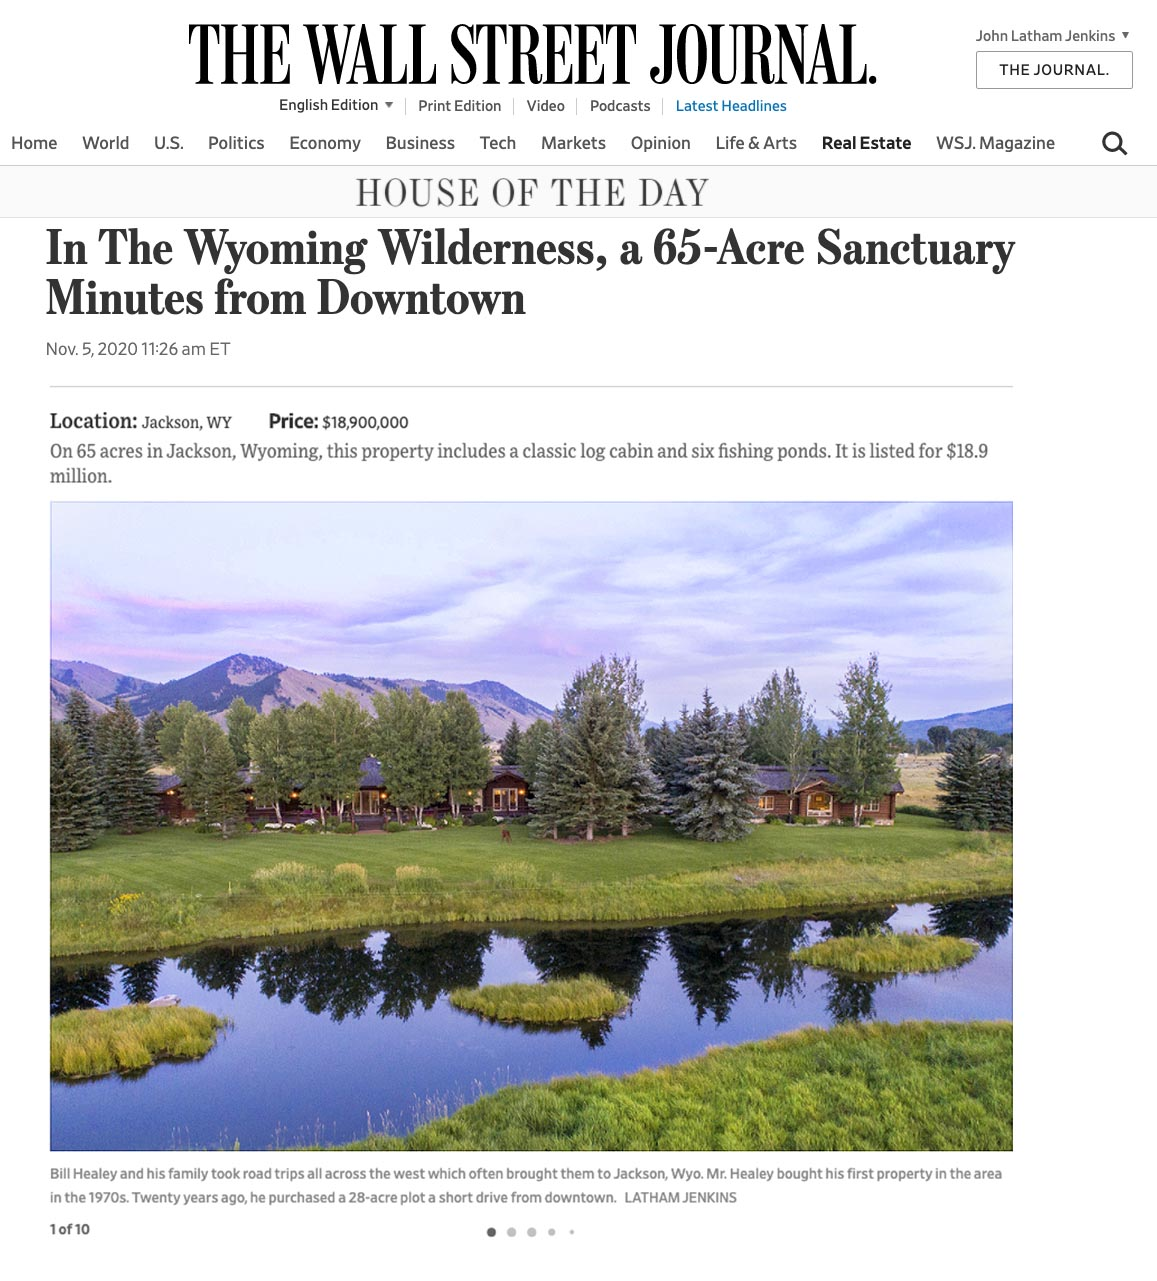 Wall Street Journal House of the Day - Cody Creek Sanctuary